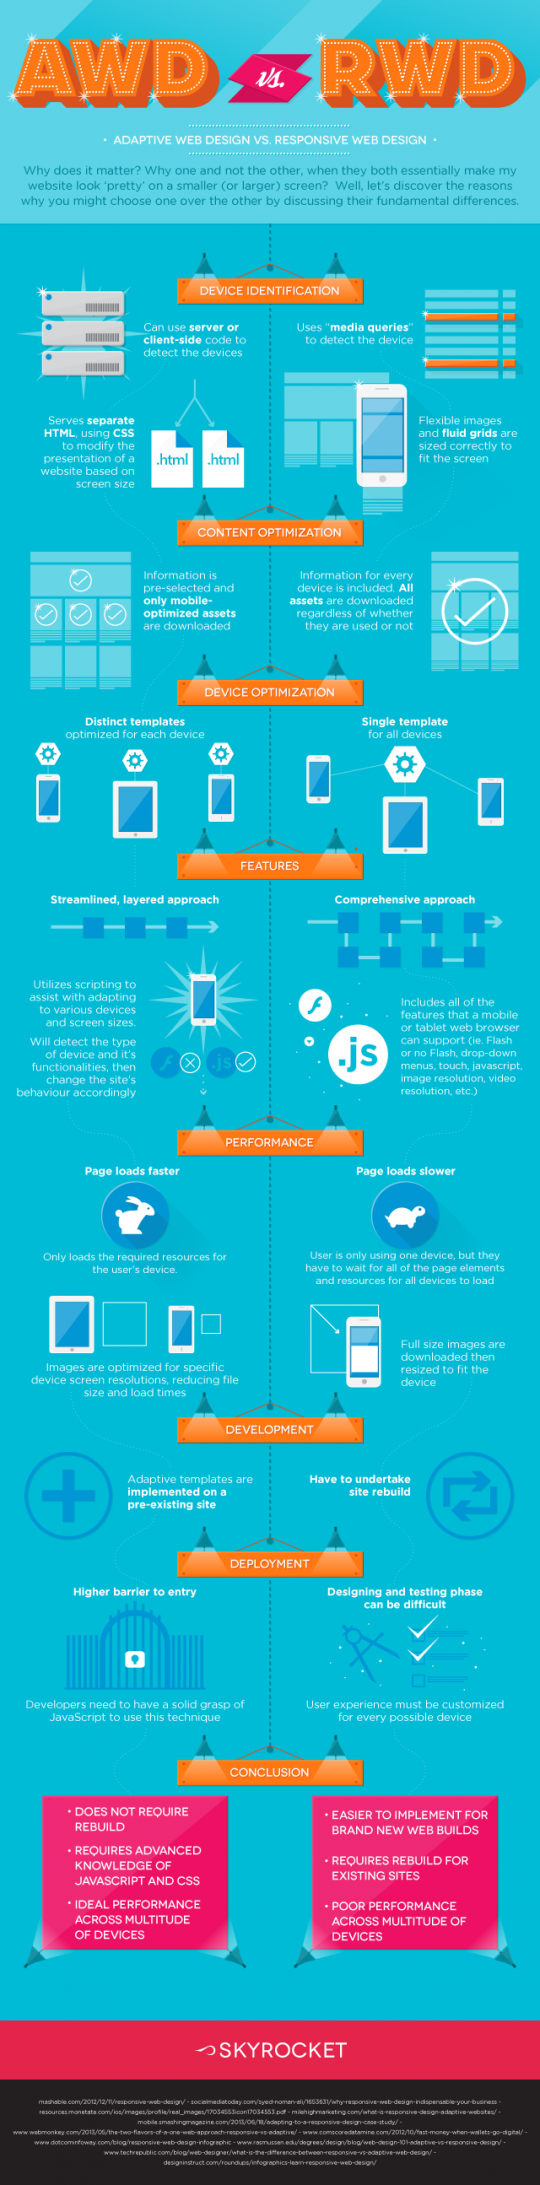 Adaptive Web Design vs. Responsive Web Design